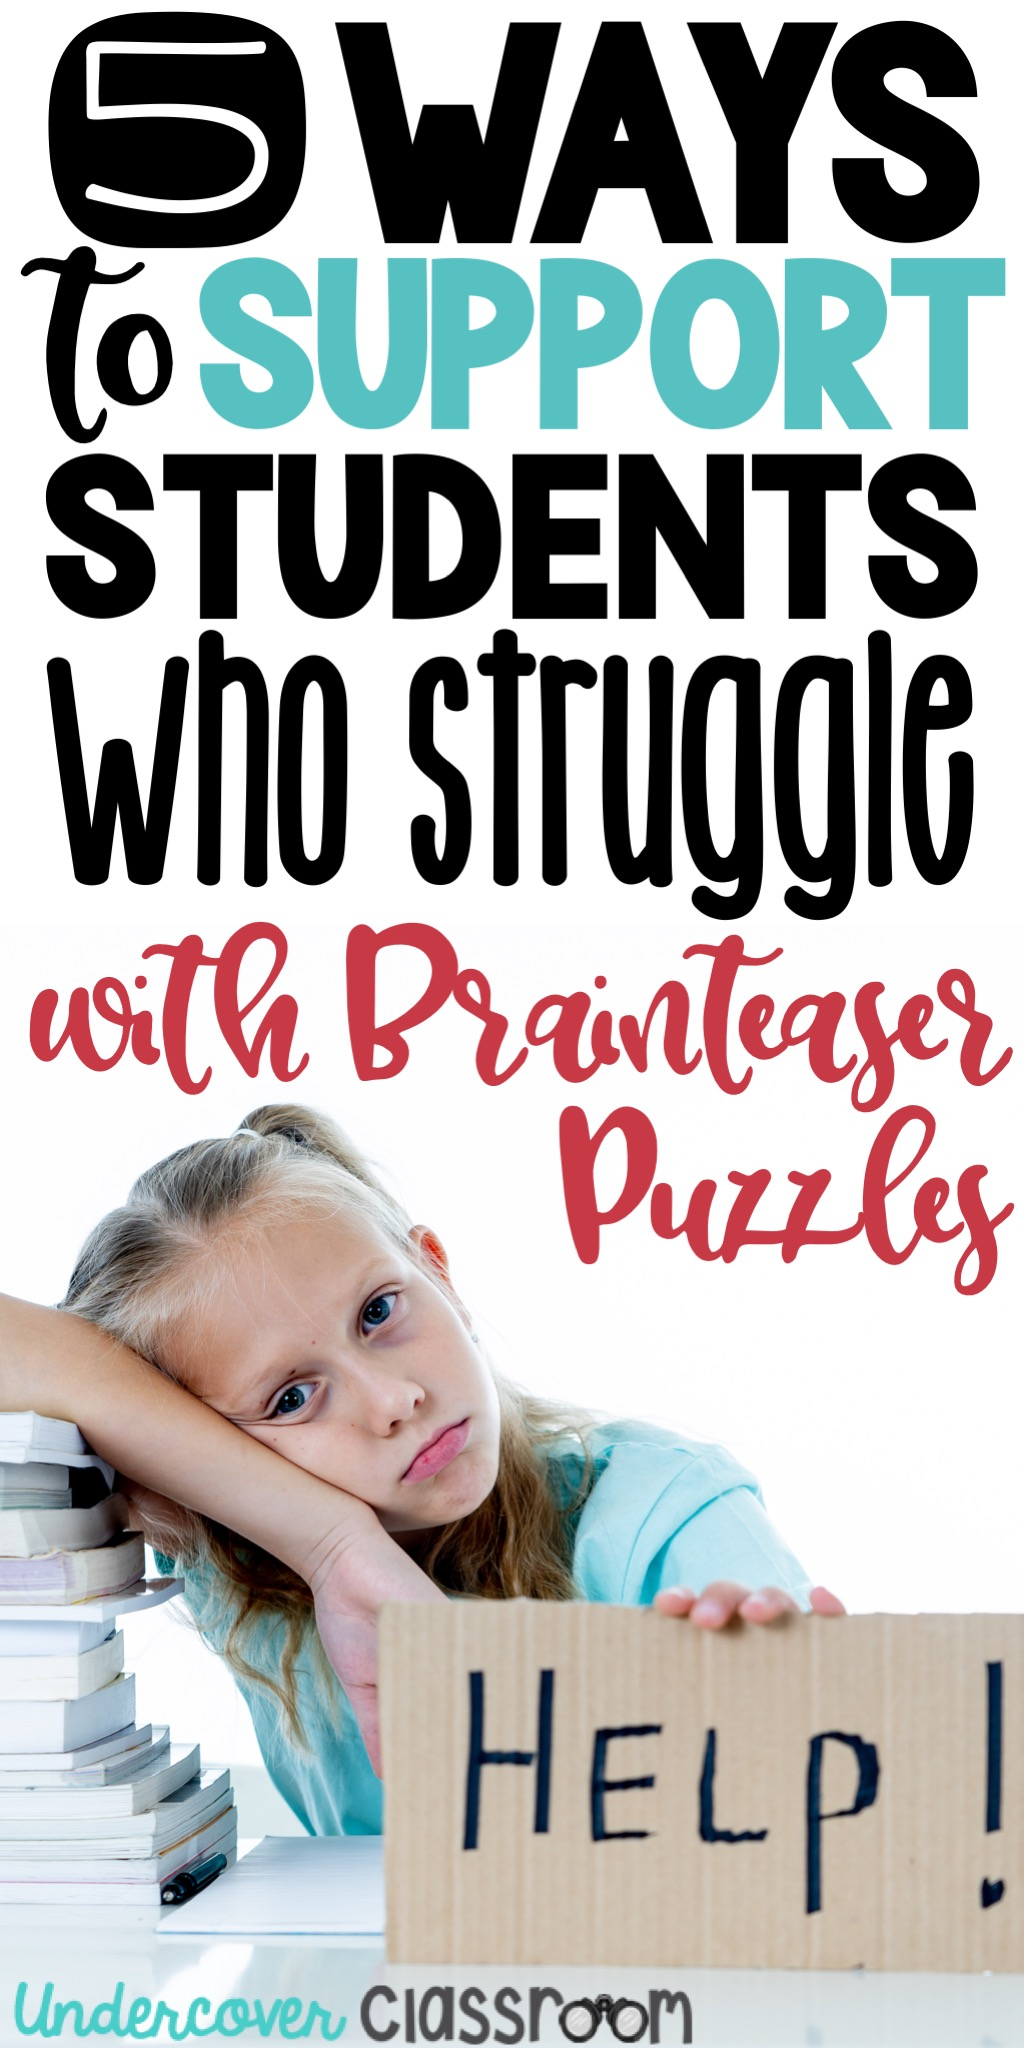 Brainteaser puzzles help students build endurance and perseverance, but how can we help every student be successful? Here's 5 strategies to support struggling students.